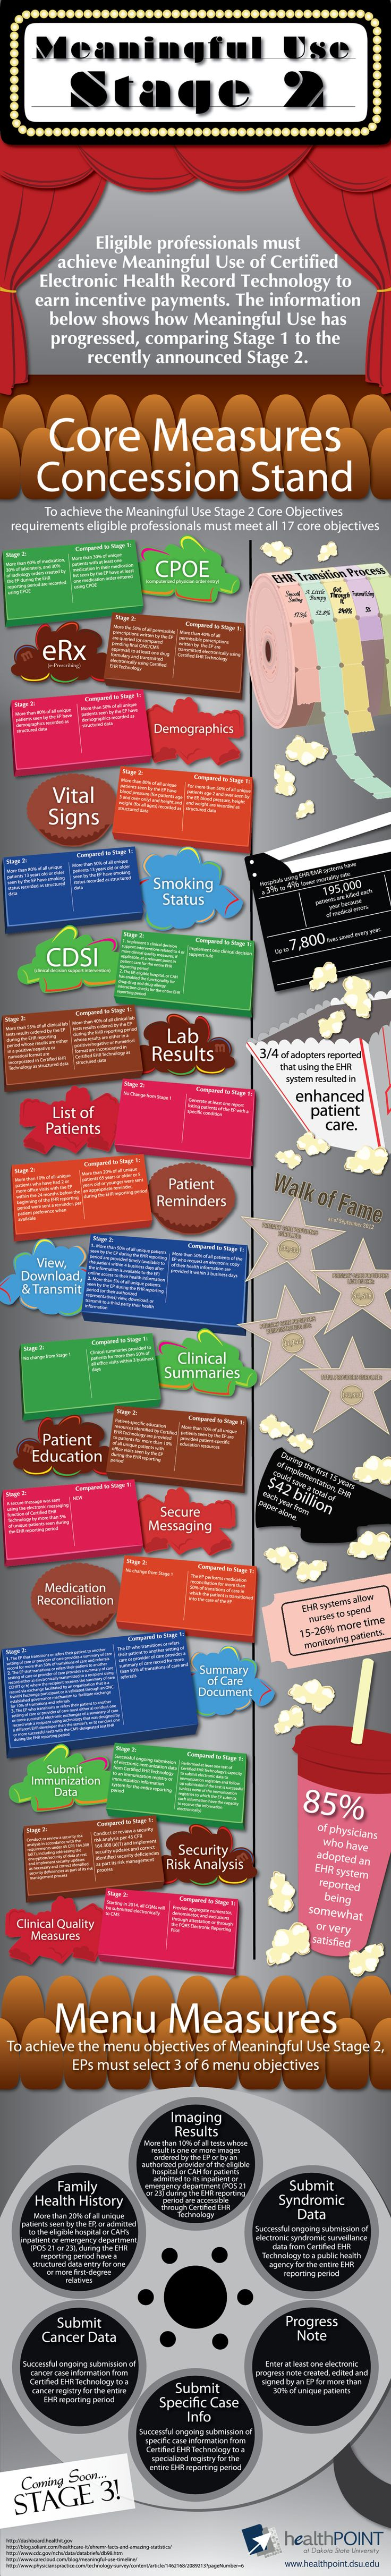 Meaningful Use Stage 2 Comparison Infographic #meaningfuluse #ehr #electronichealth